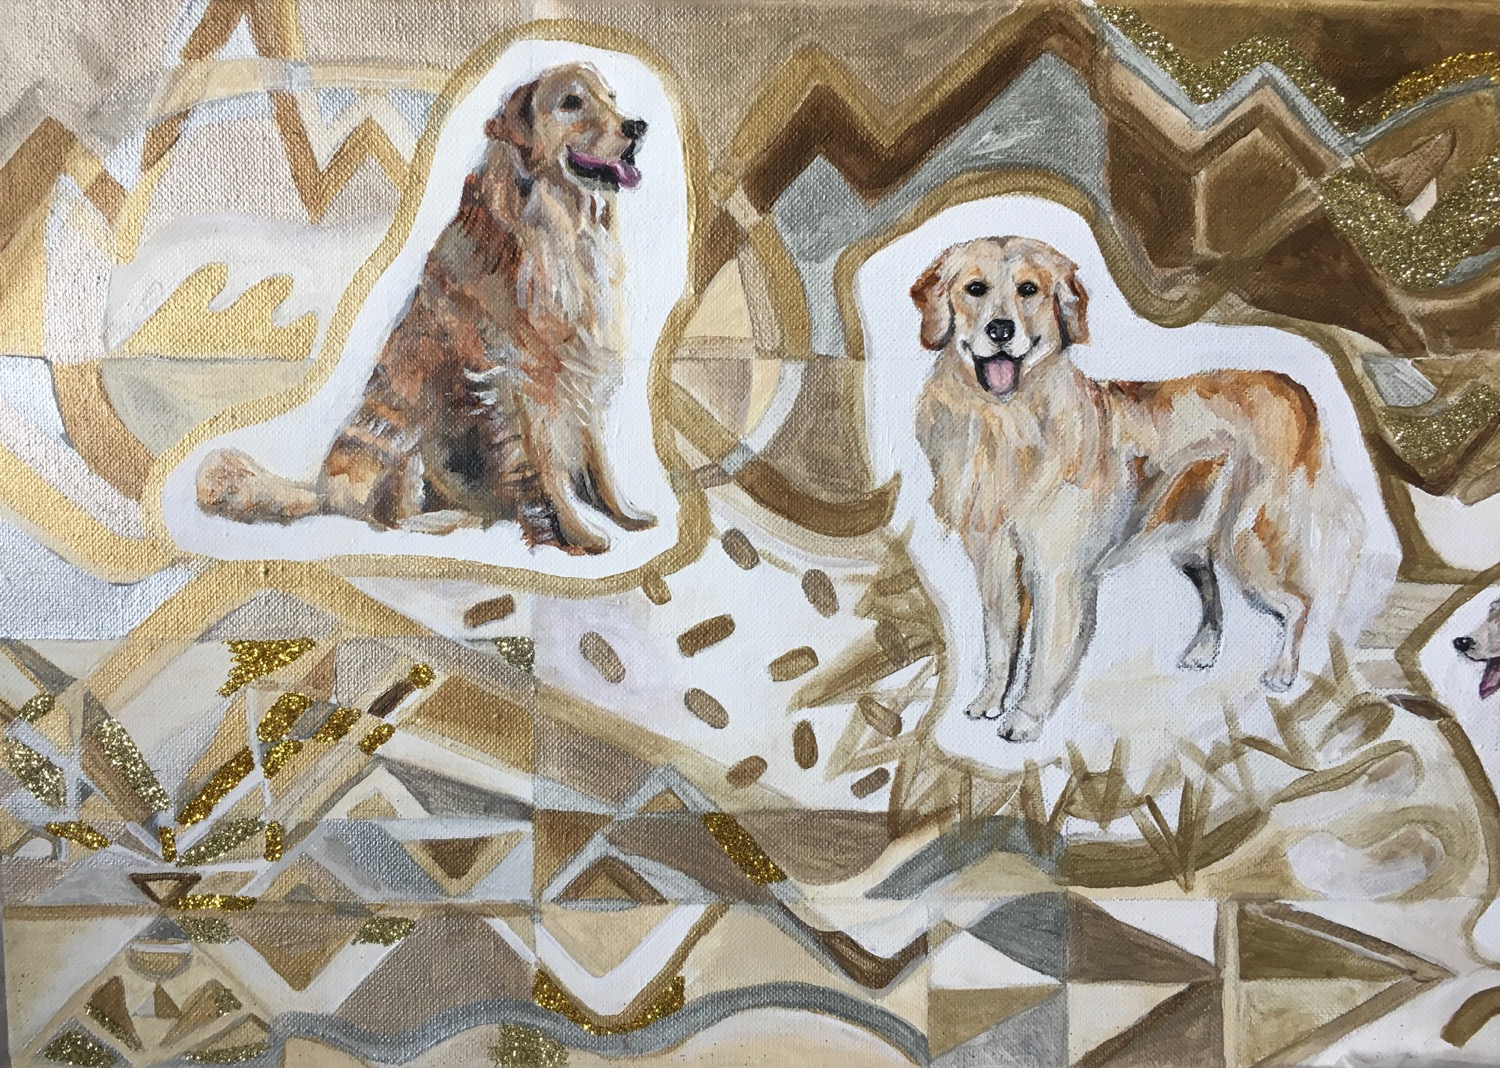 Detail of Goldens in Gold, Acrylic and Glitter on Canvas, 12 x 24 inches, 2019